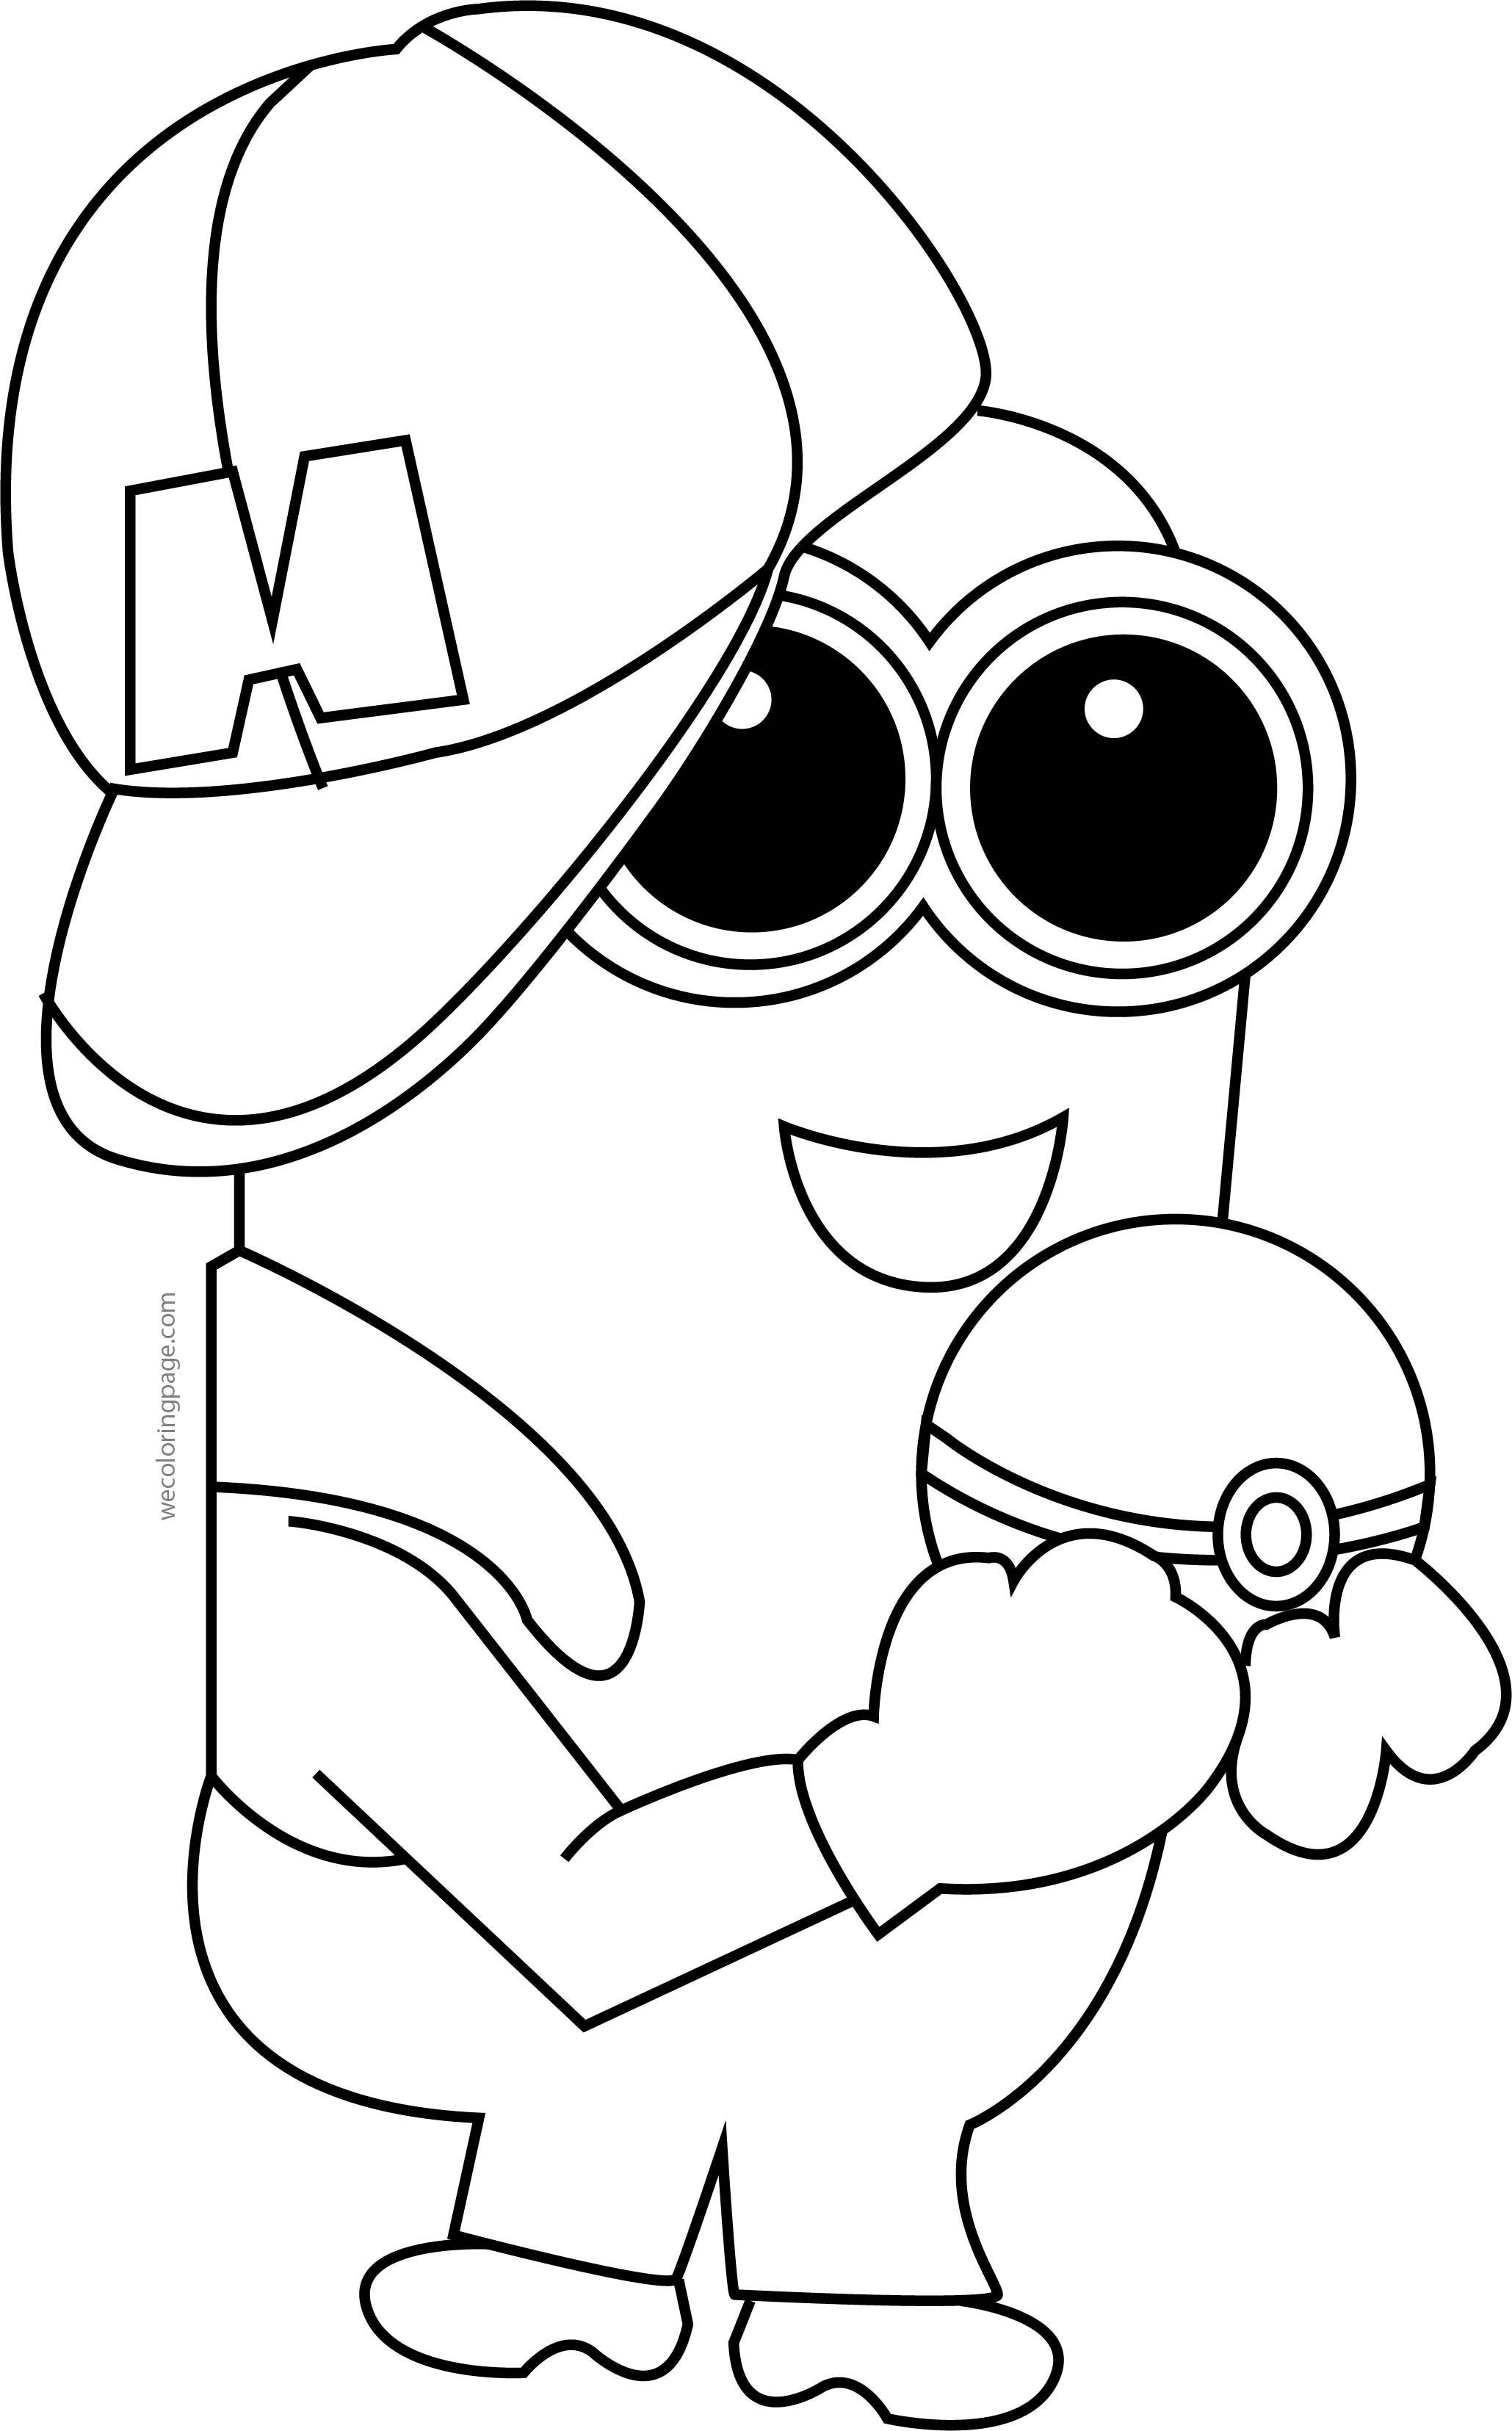 Minion pikachu pokemon coloring page for Pikachu coloring pages